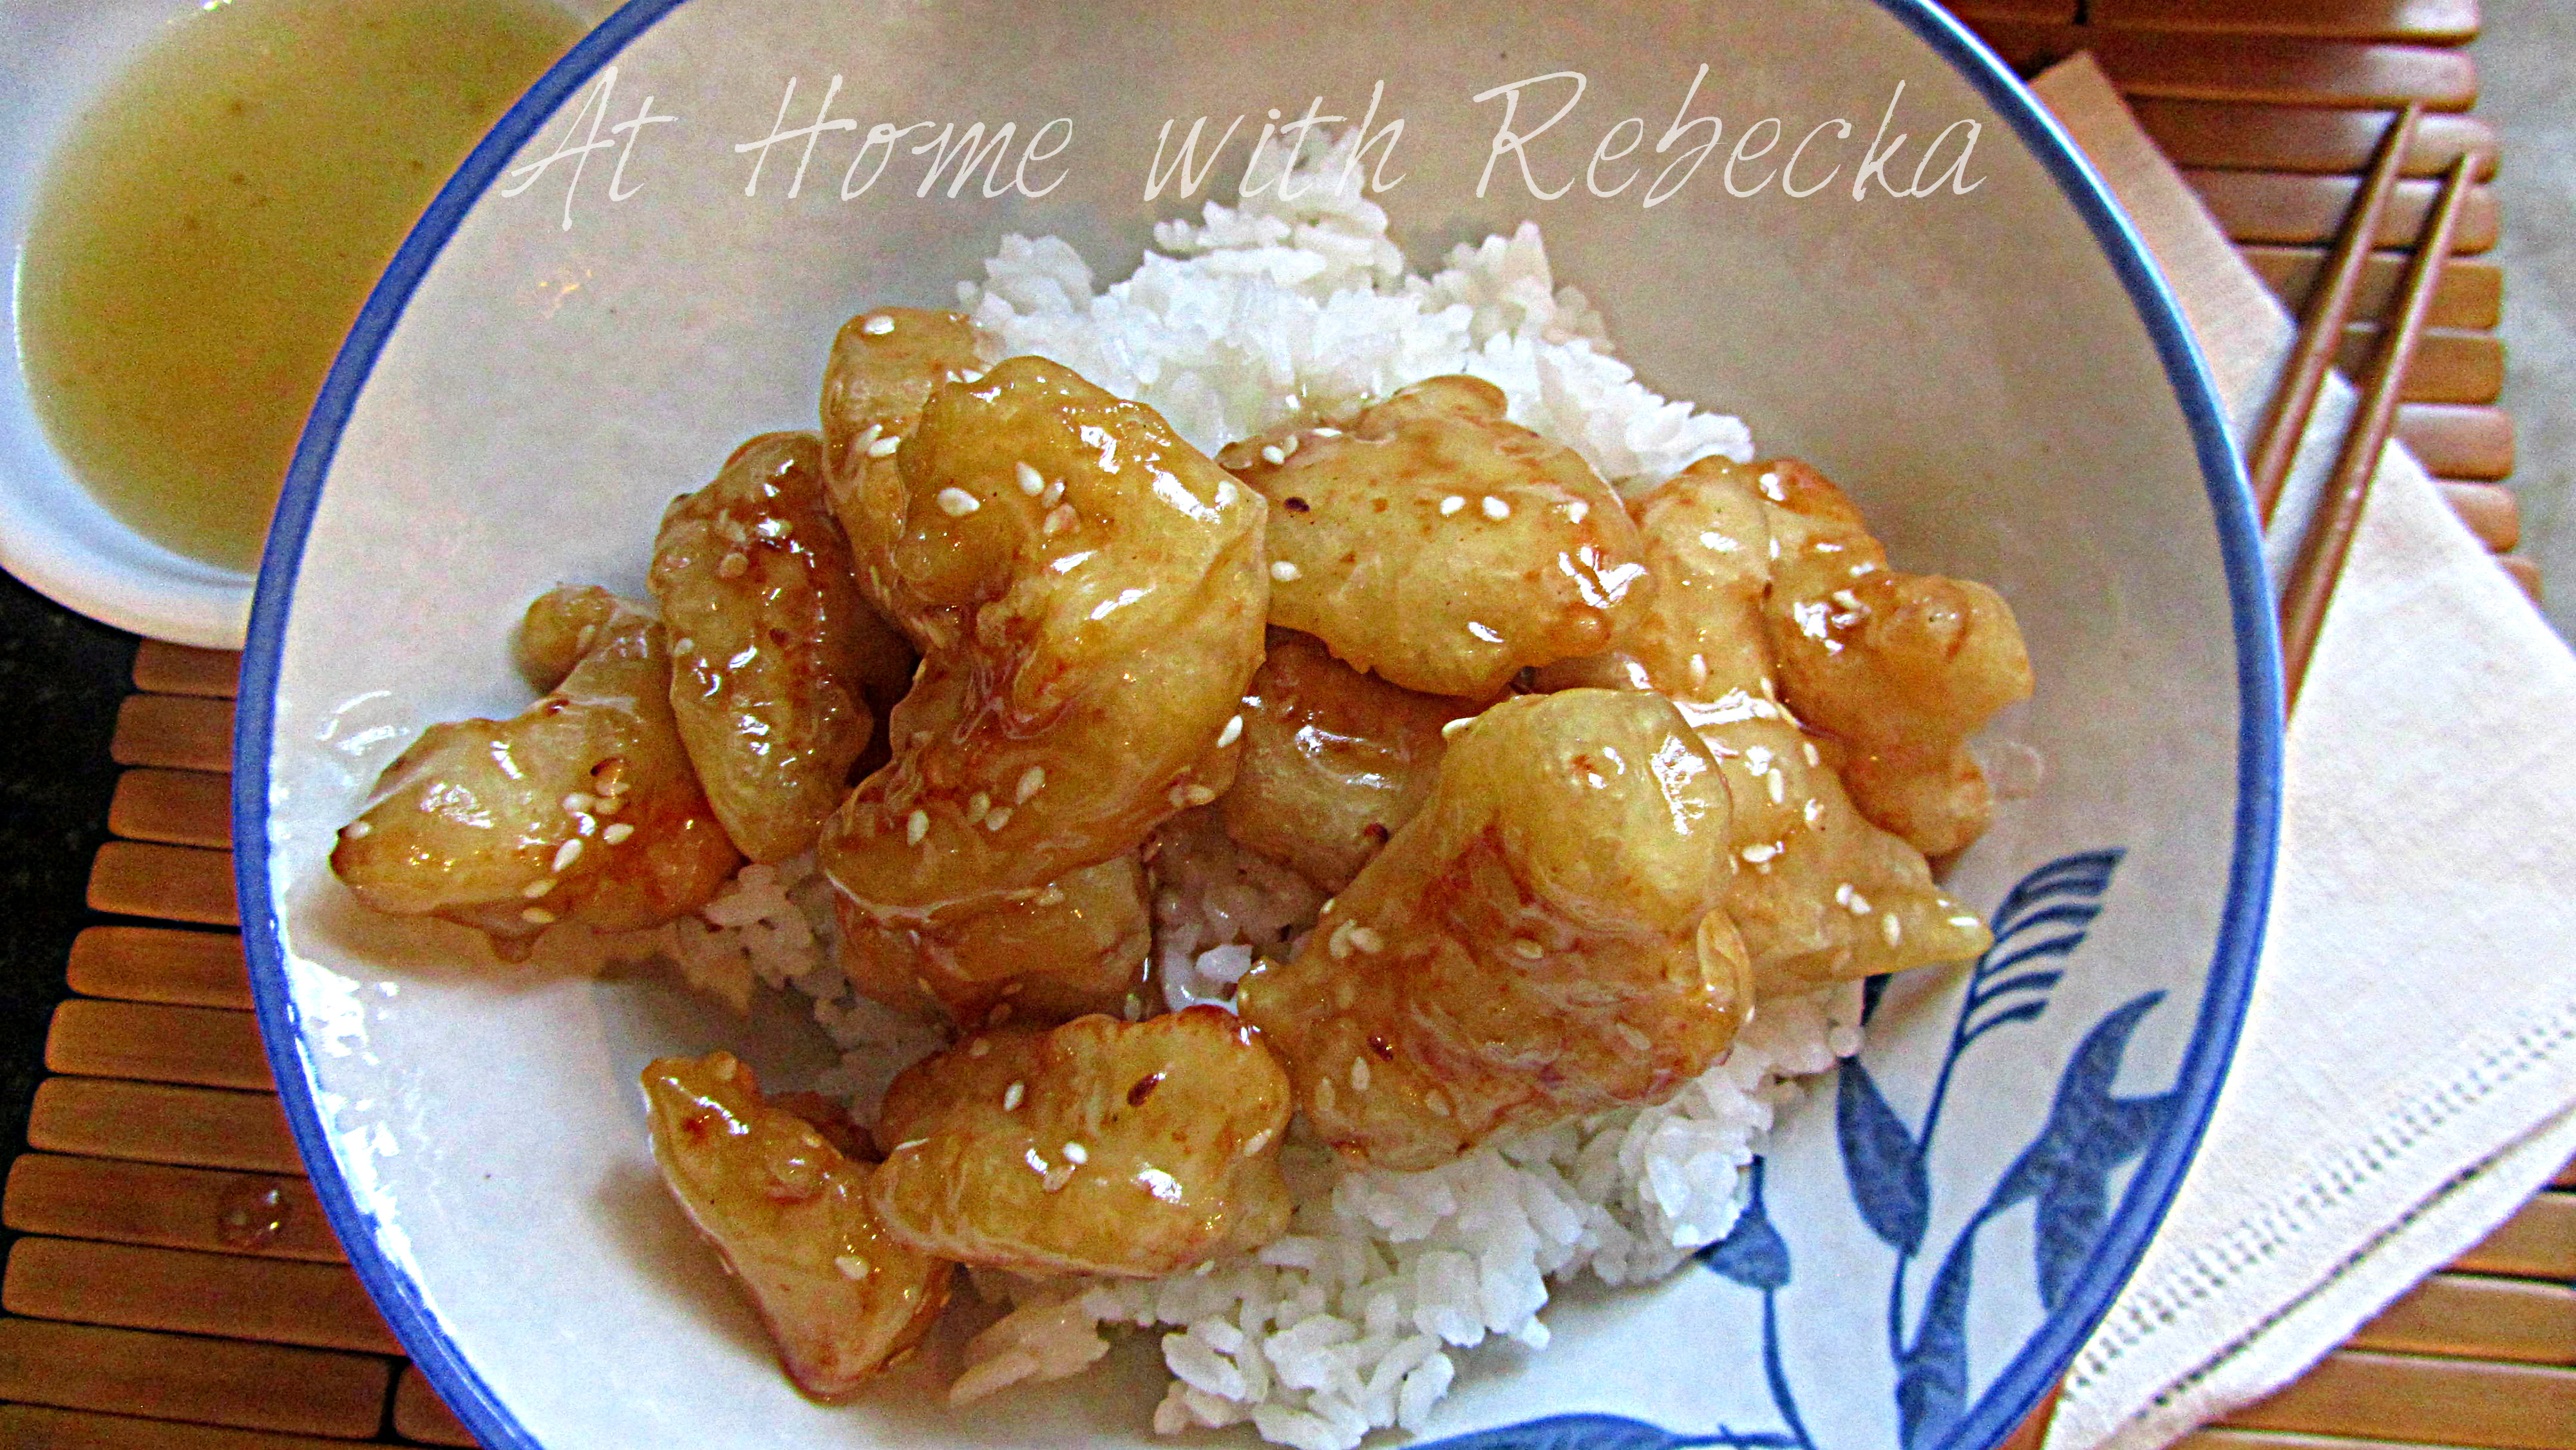 Chinese Honey Chicken Recipe - At Home with Rebecka